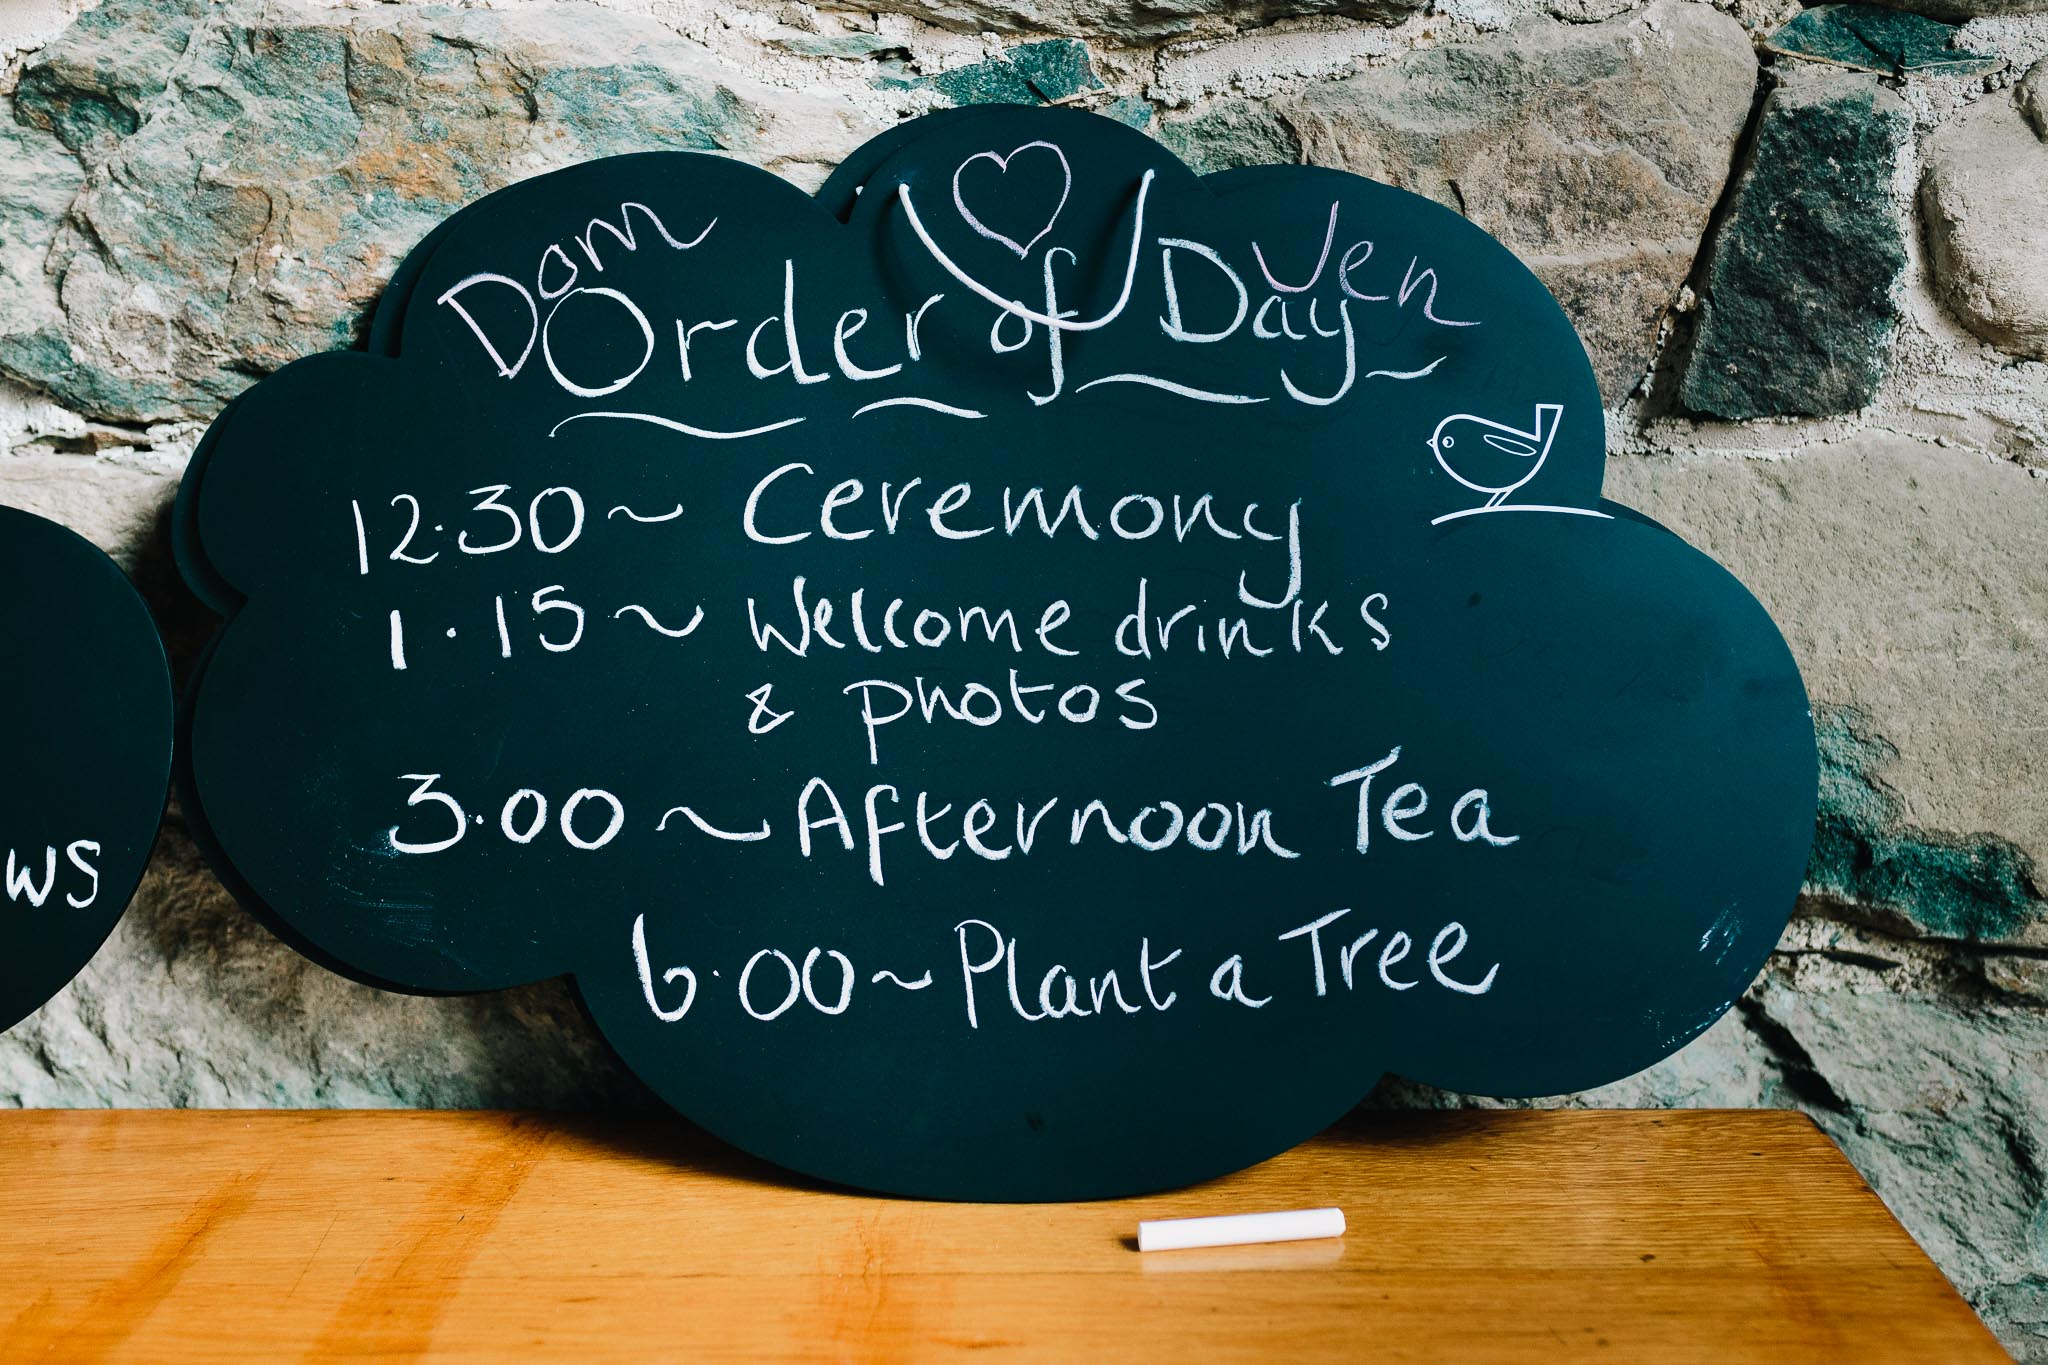 WEDDING CHALKBOARD SHOWING TIMINGS FOR THE BIG DAY